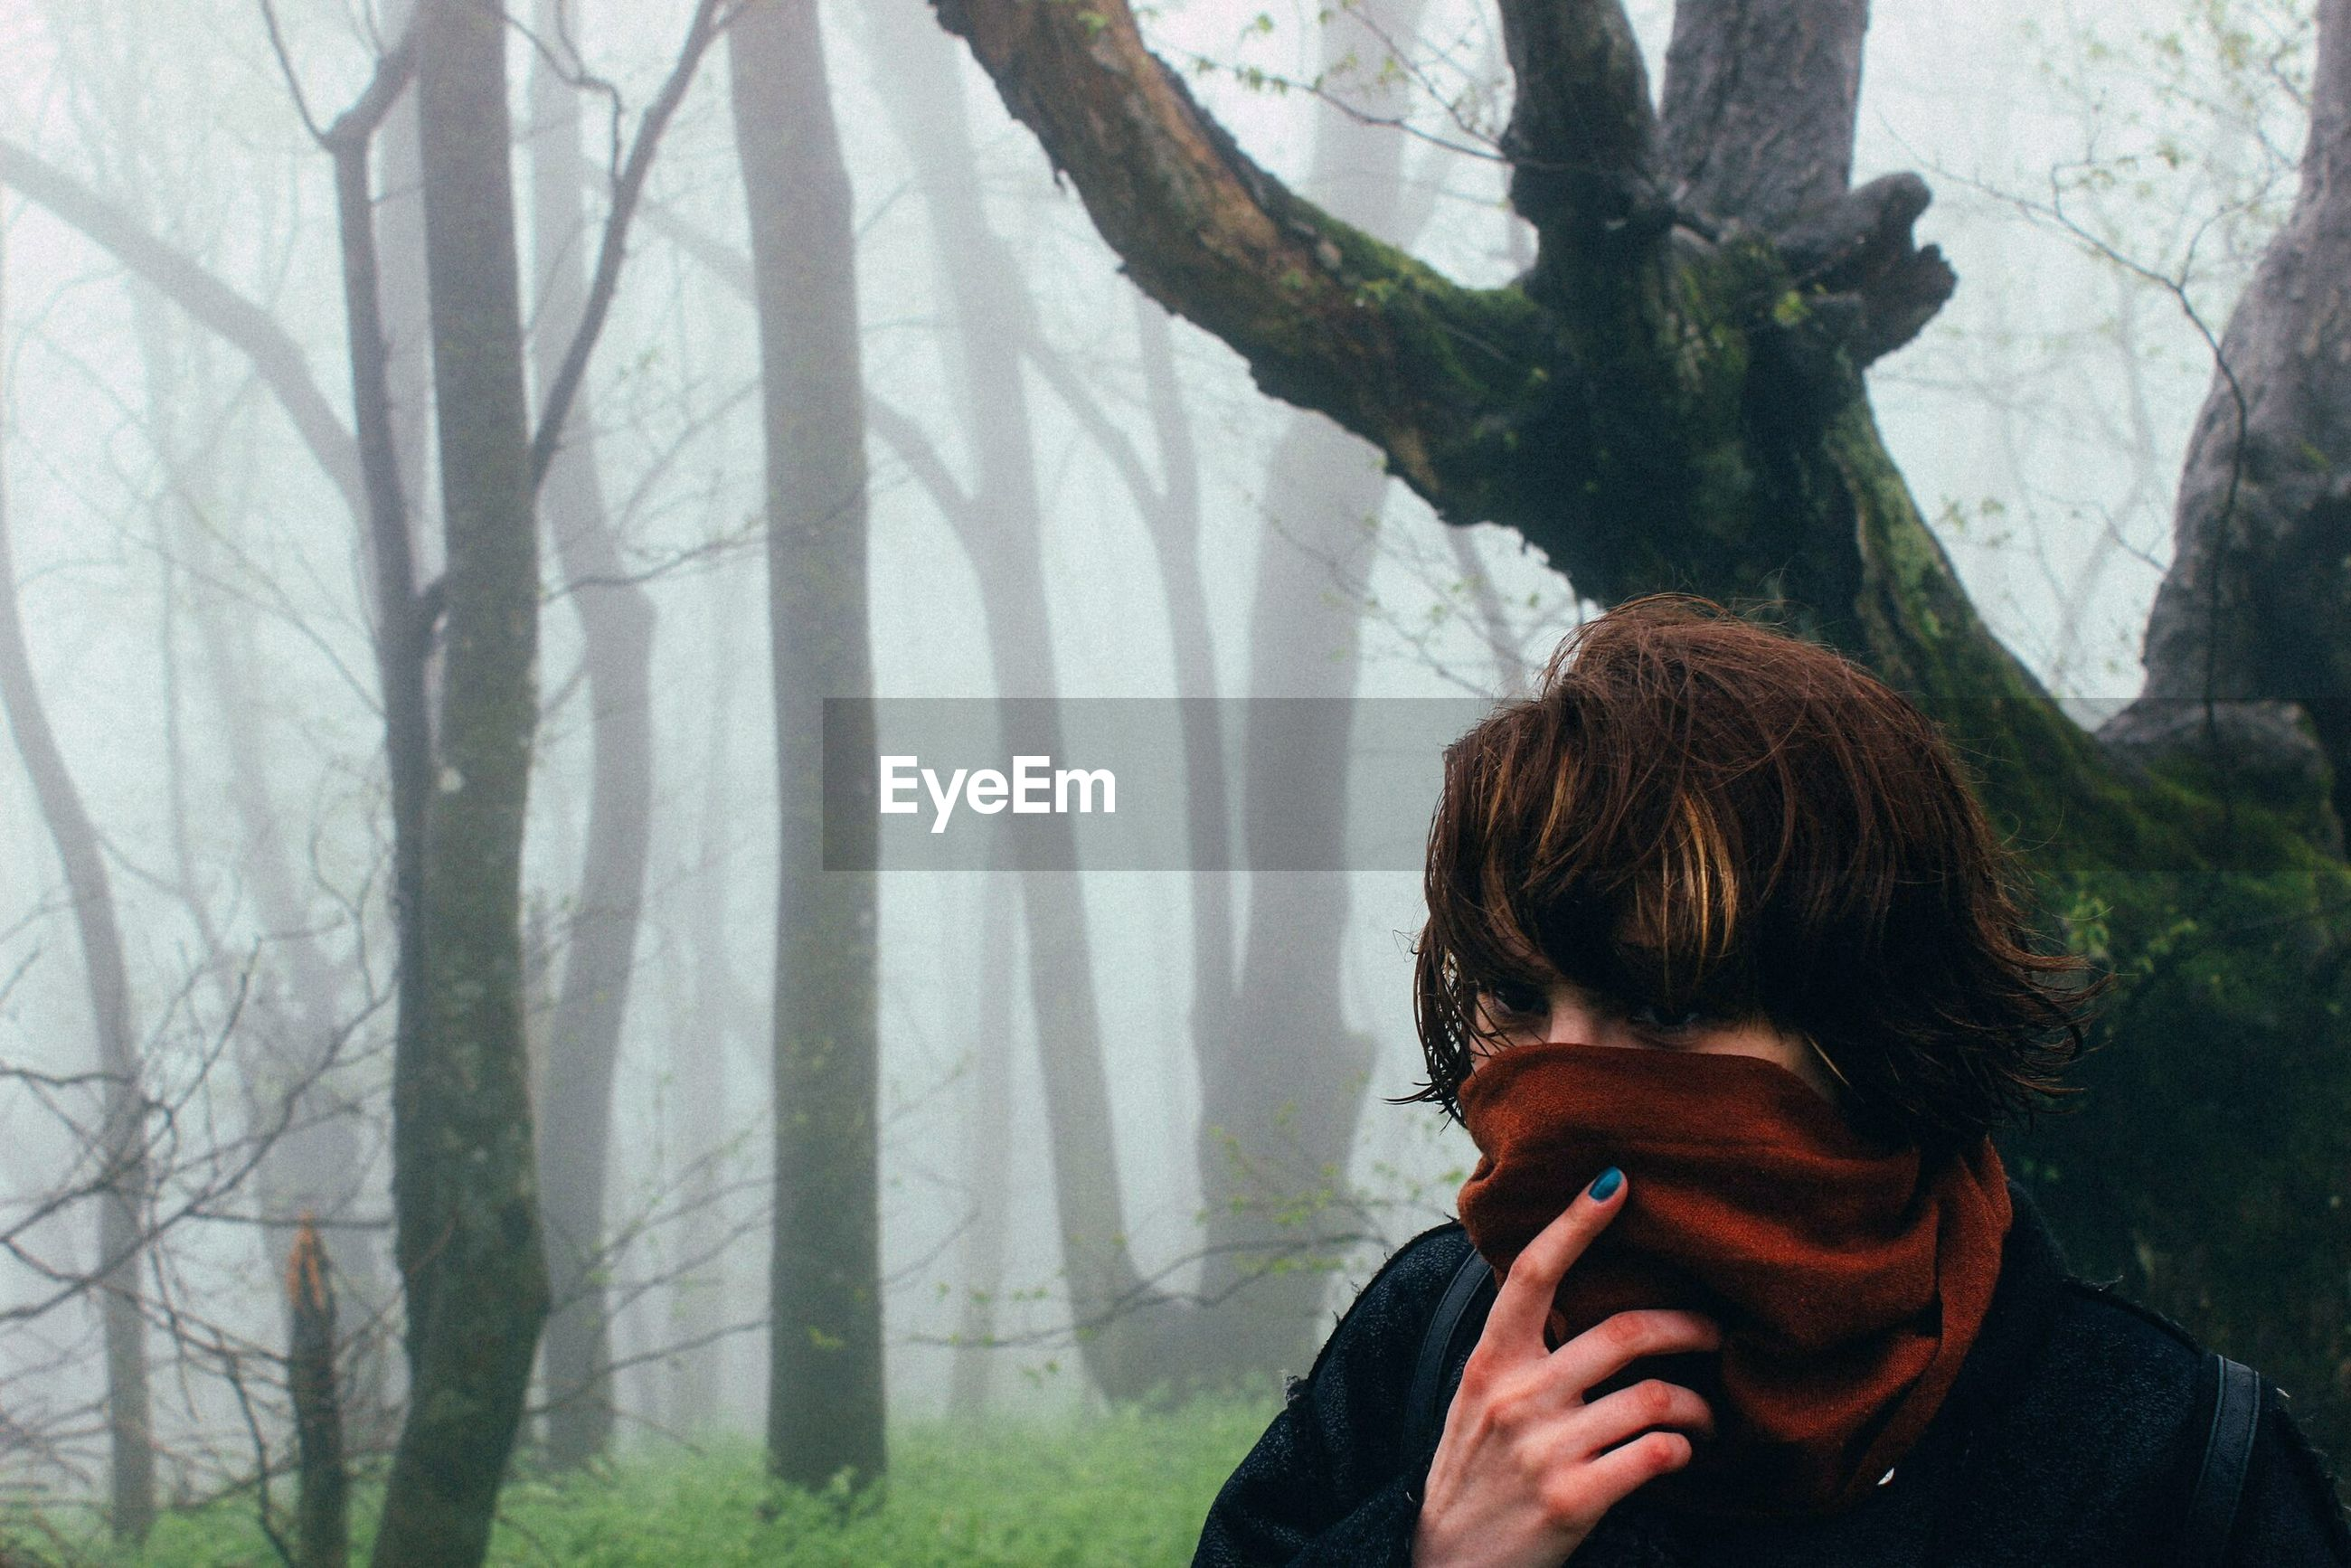 Close-up of woman with covered face against bare trees in foggy weather